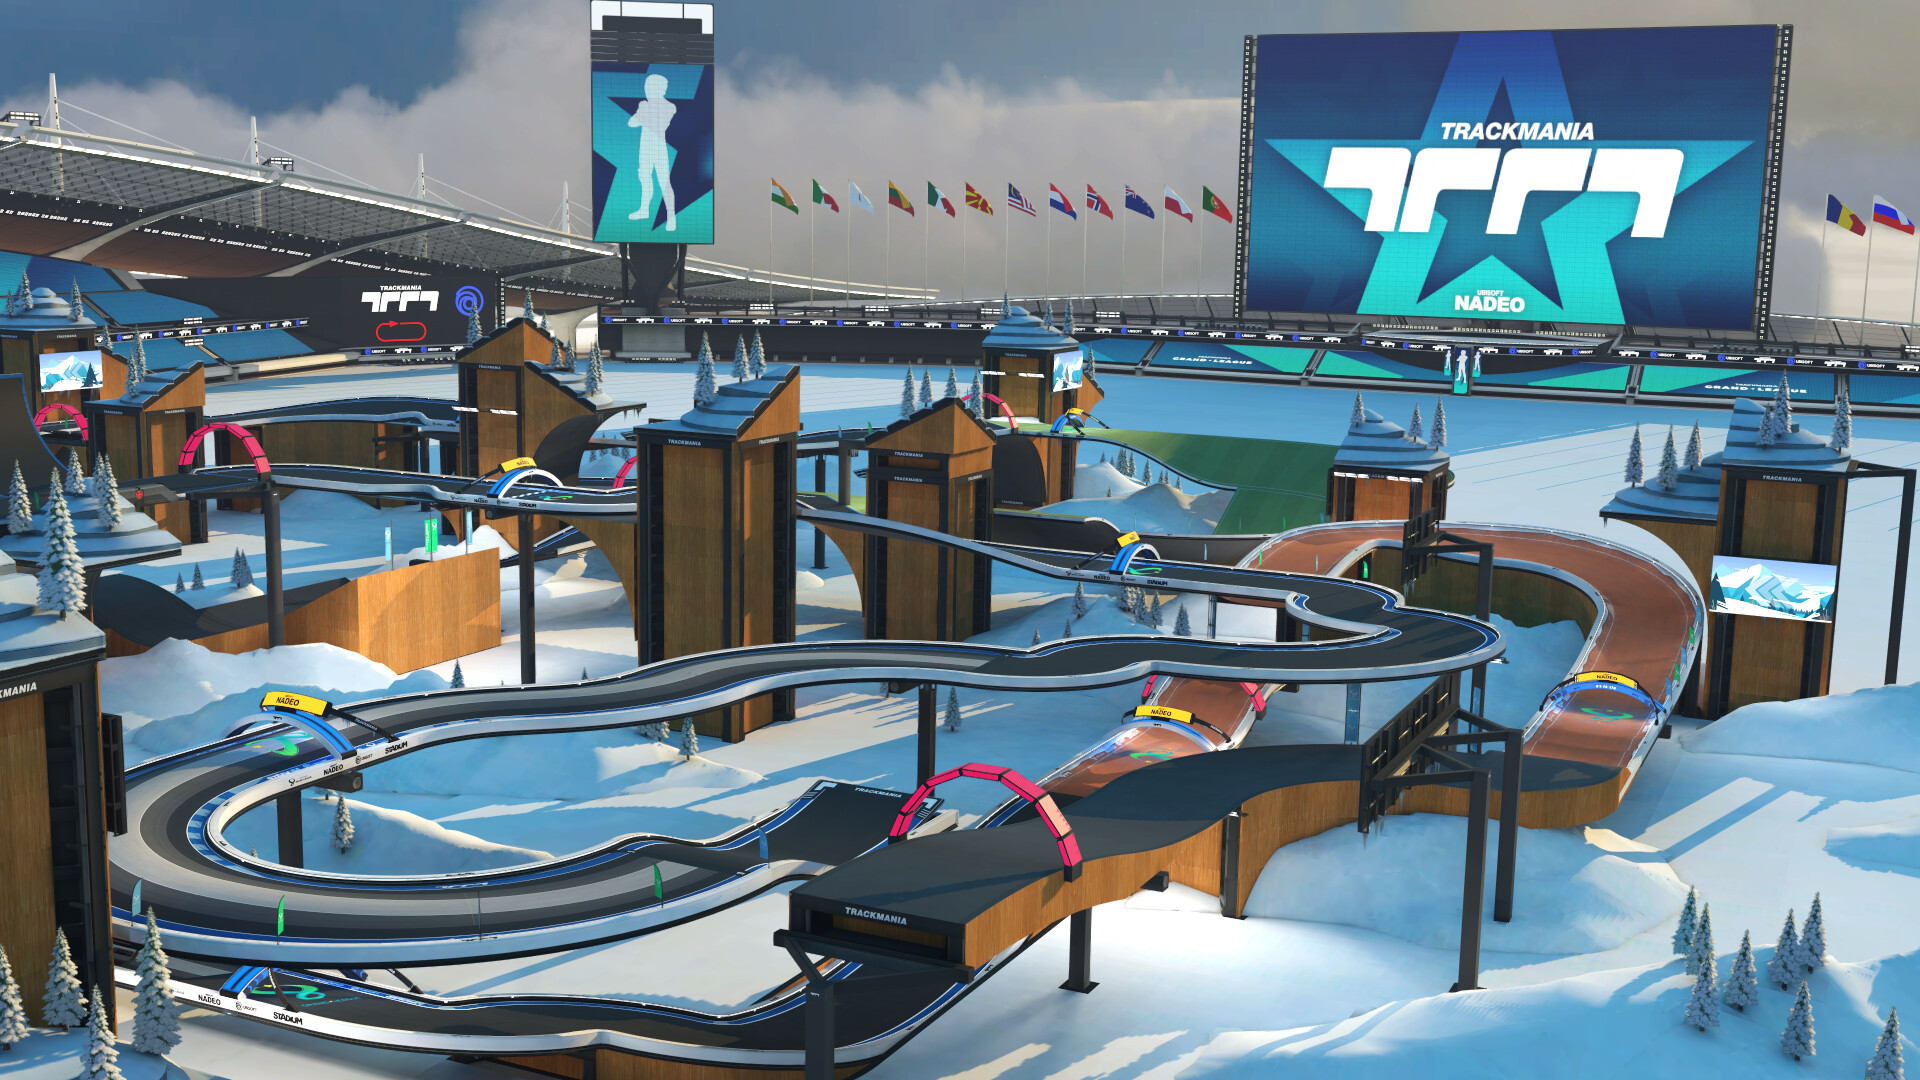 Picture of a Trackmania map